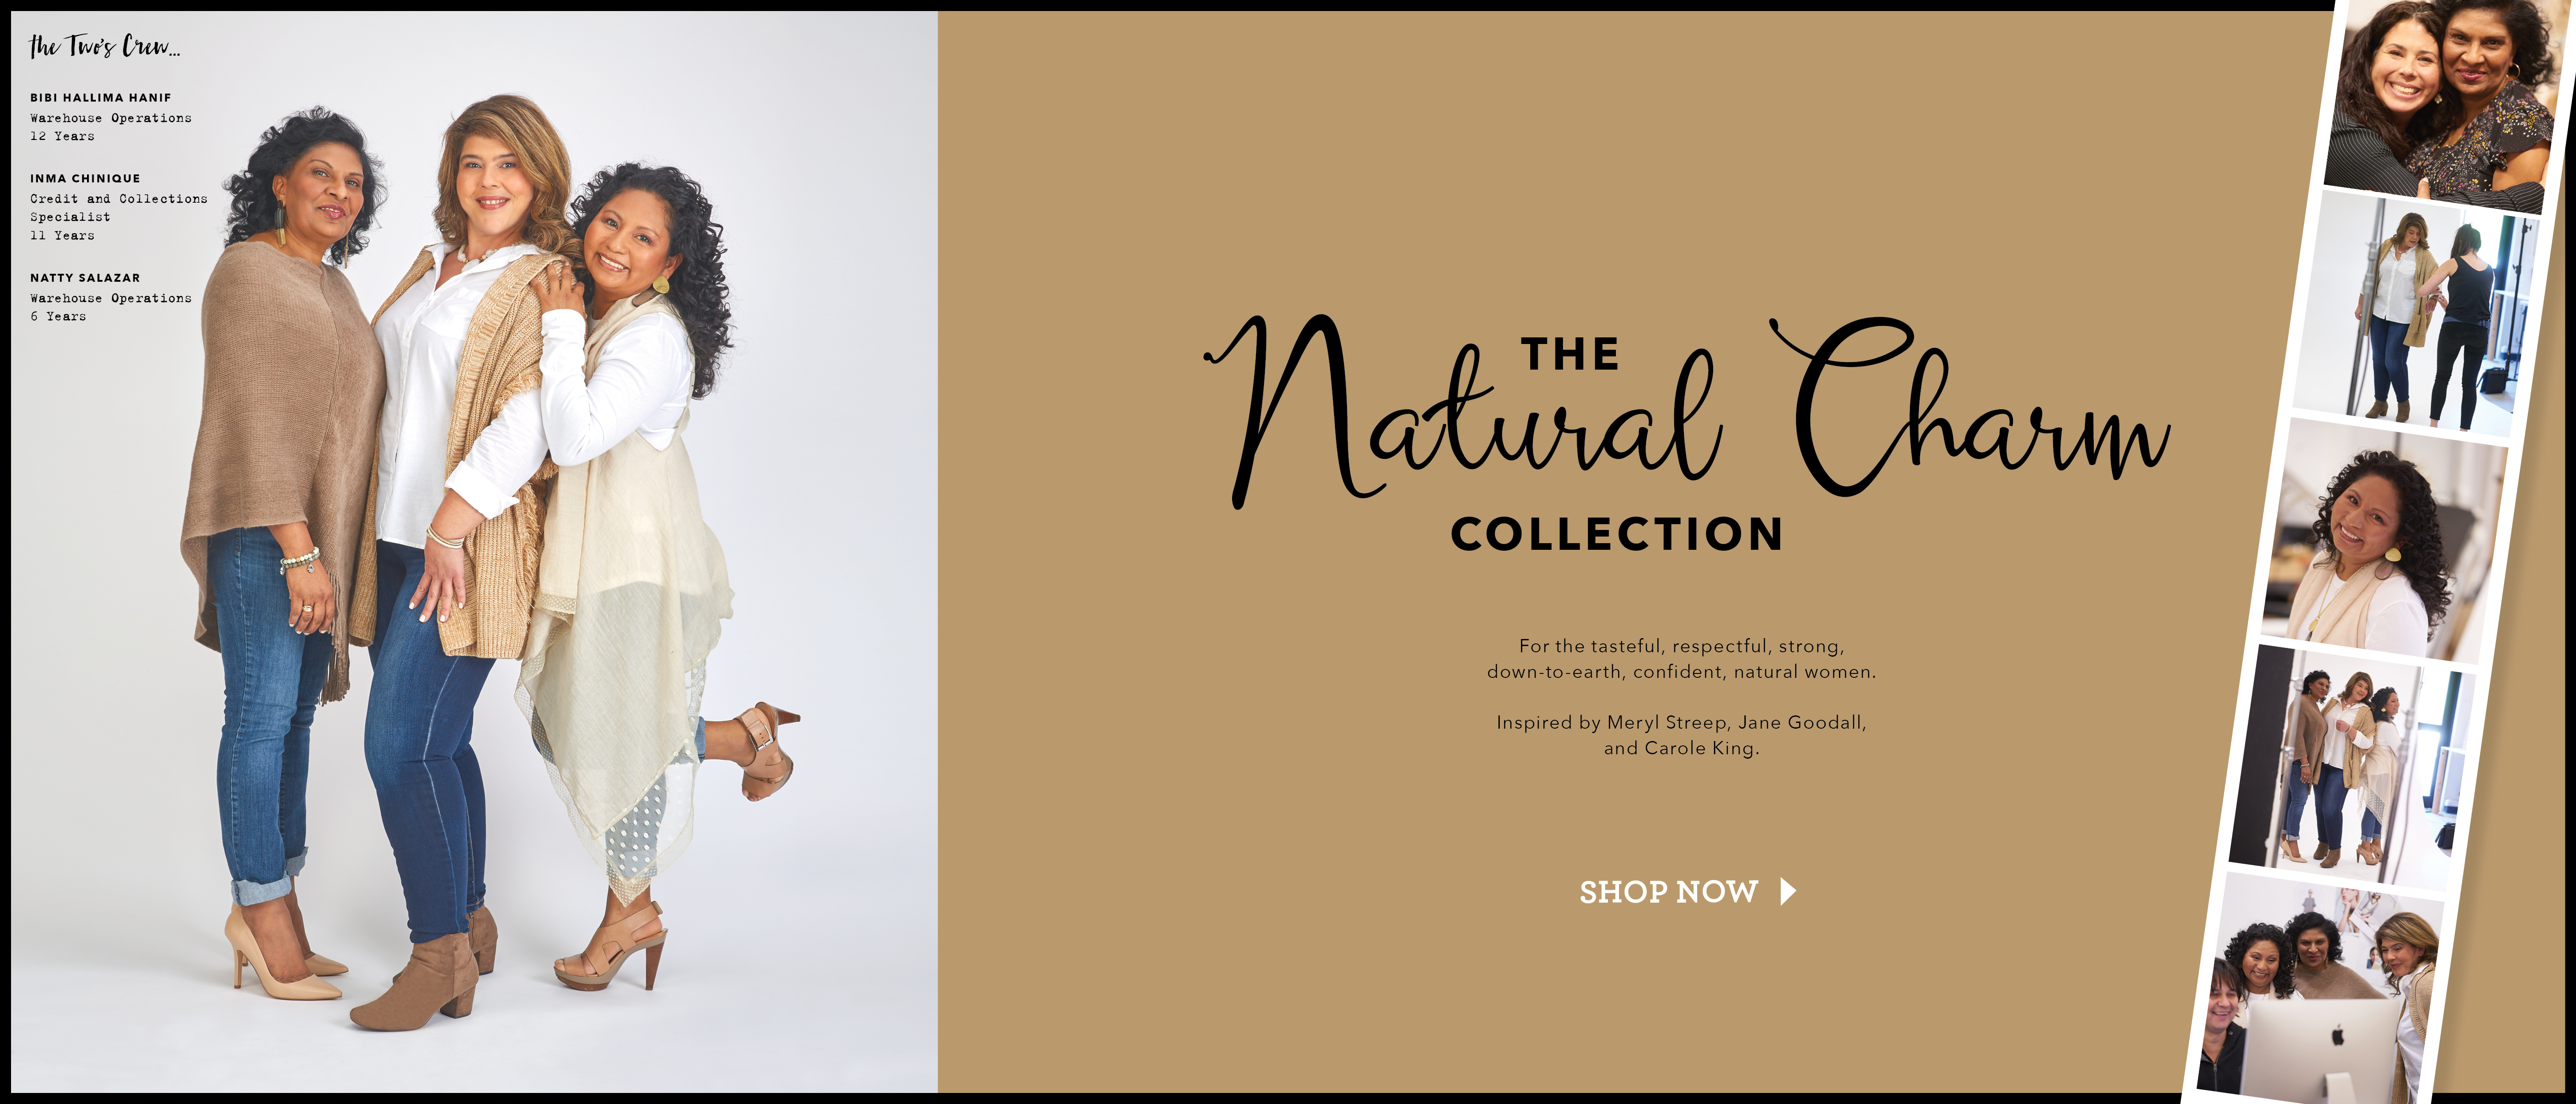 Natural Charm Collection image